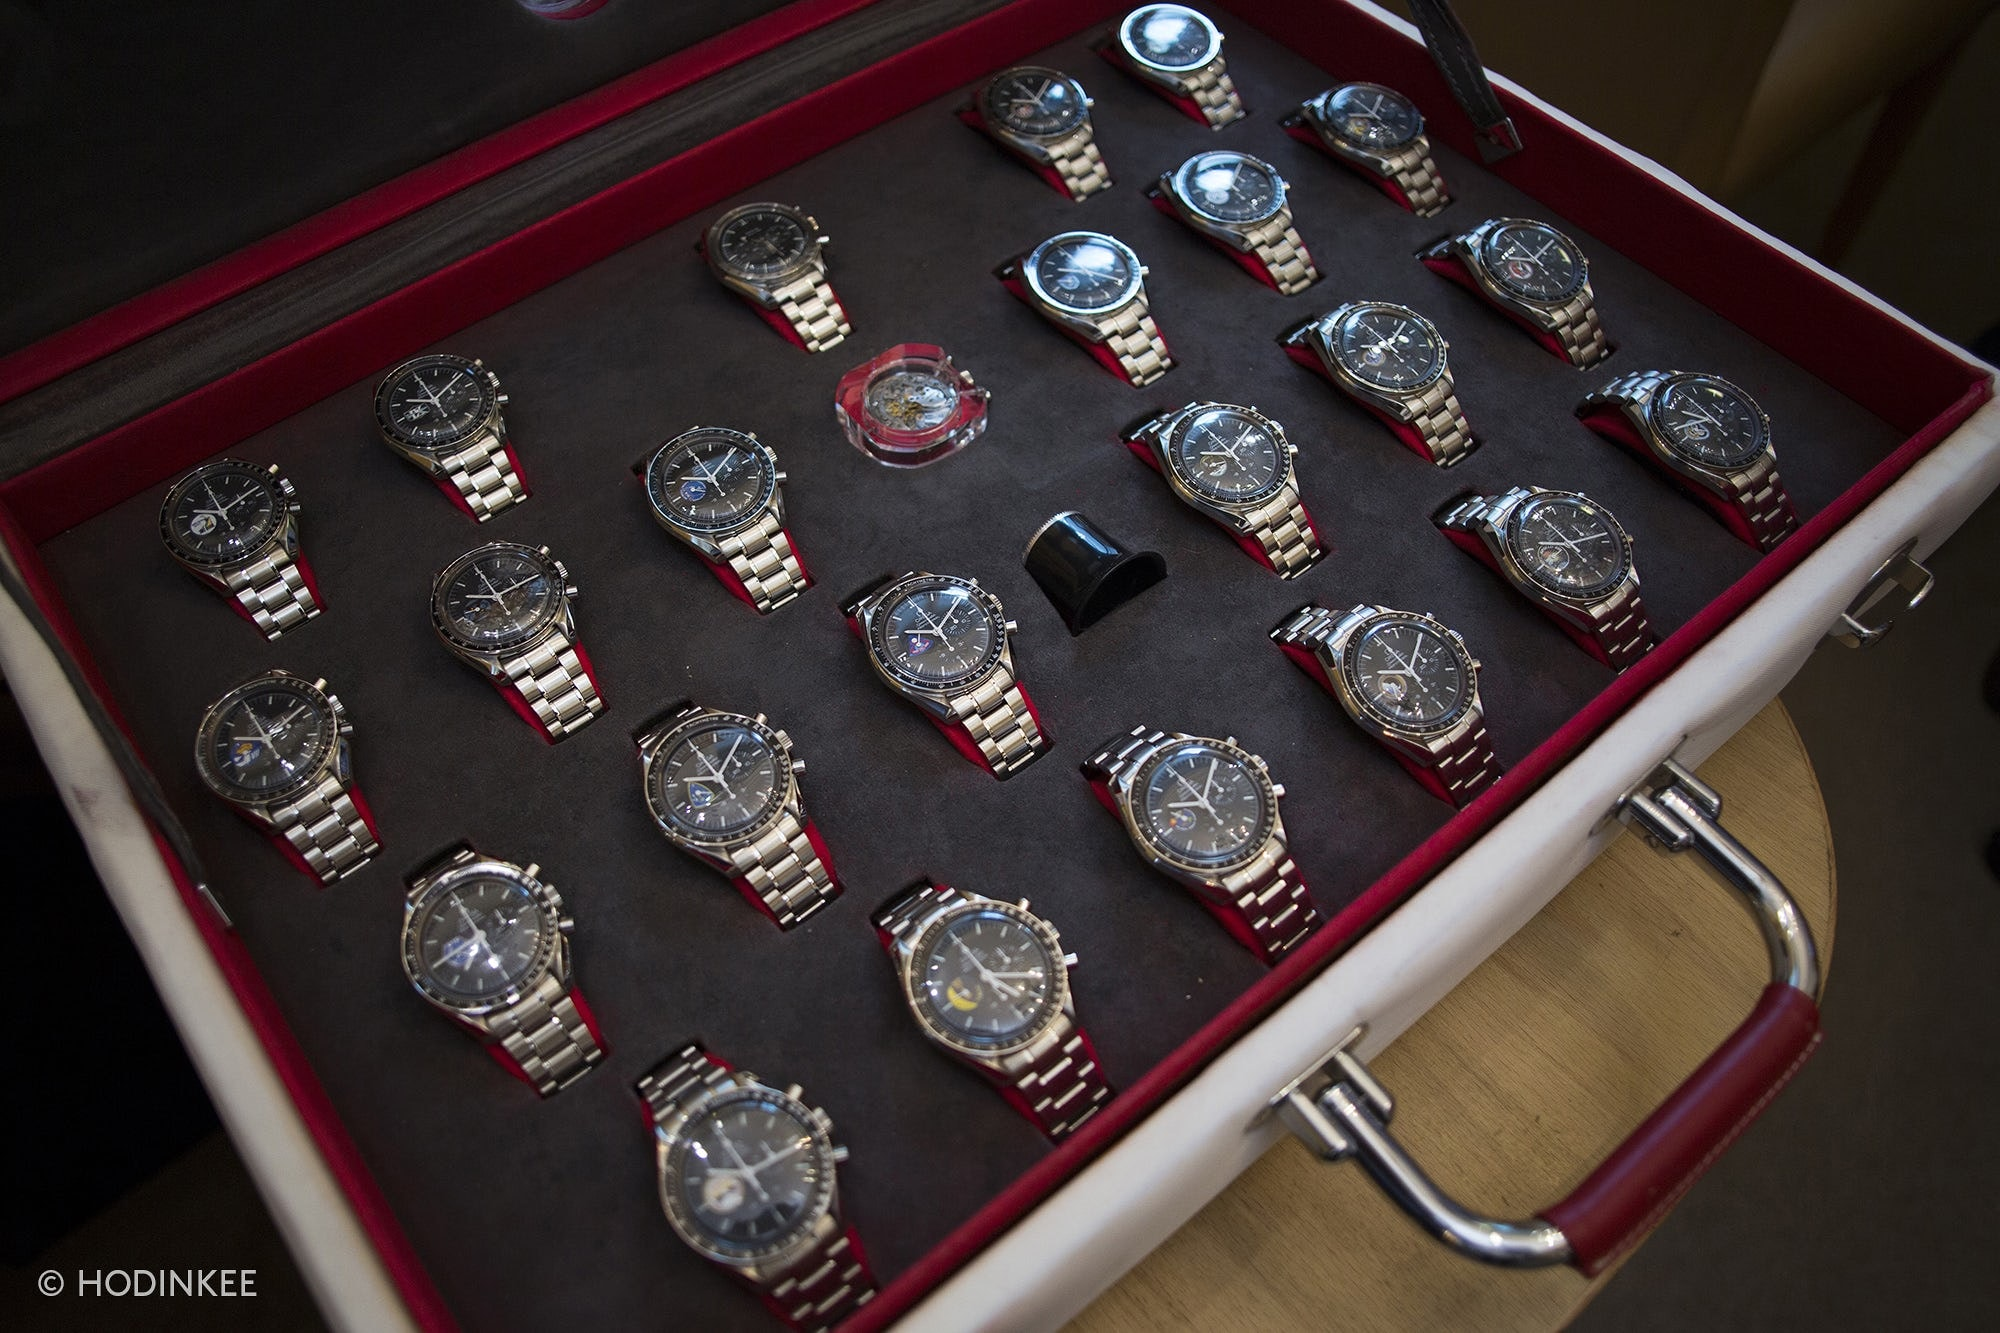 Sunday Rewind: A Look Inside The World's Only Authorized Vintage Omega Dealer 20010039 1 copy 2